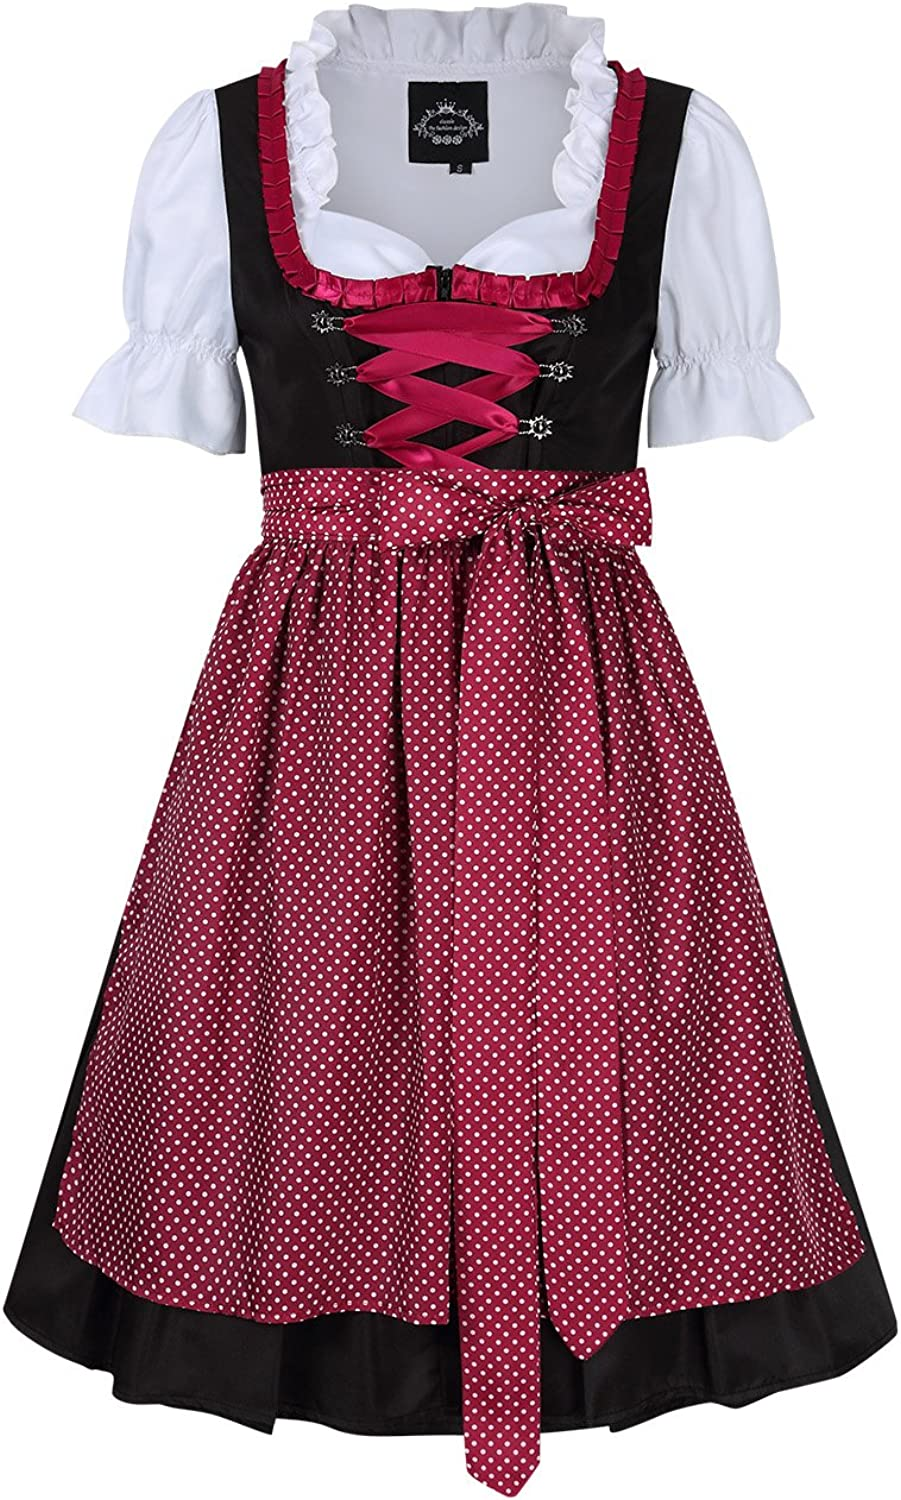 Women's Oktoberfest Fraulein Costume,Short Sleeve Dirndl Dress Three PCS Suit with Red Dot Lace Trim M